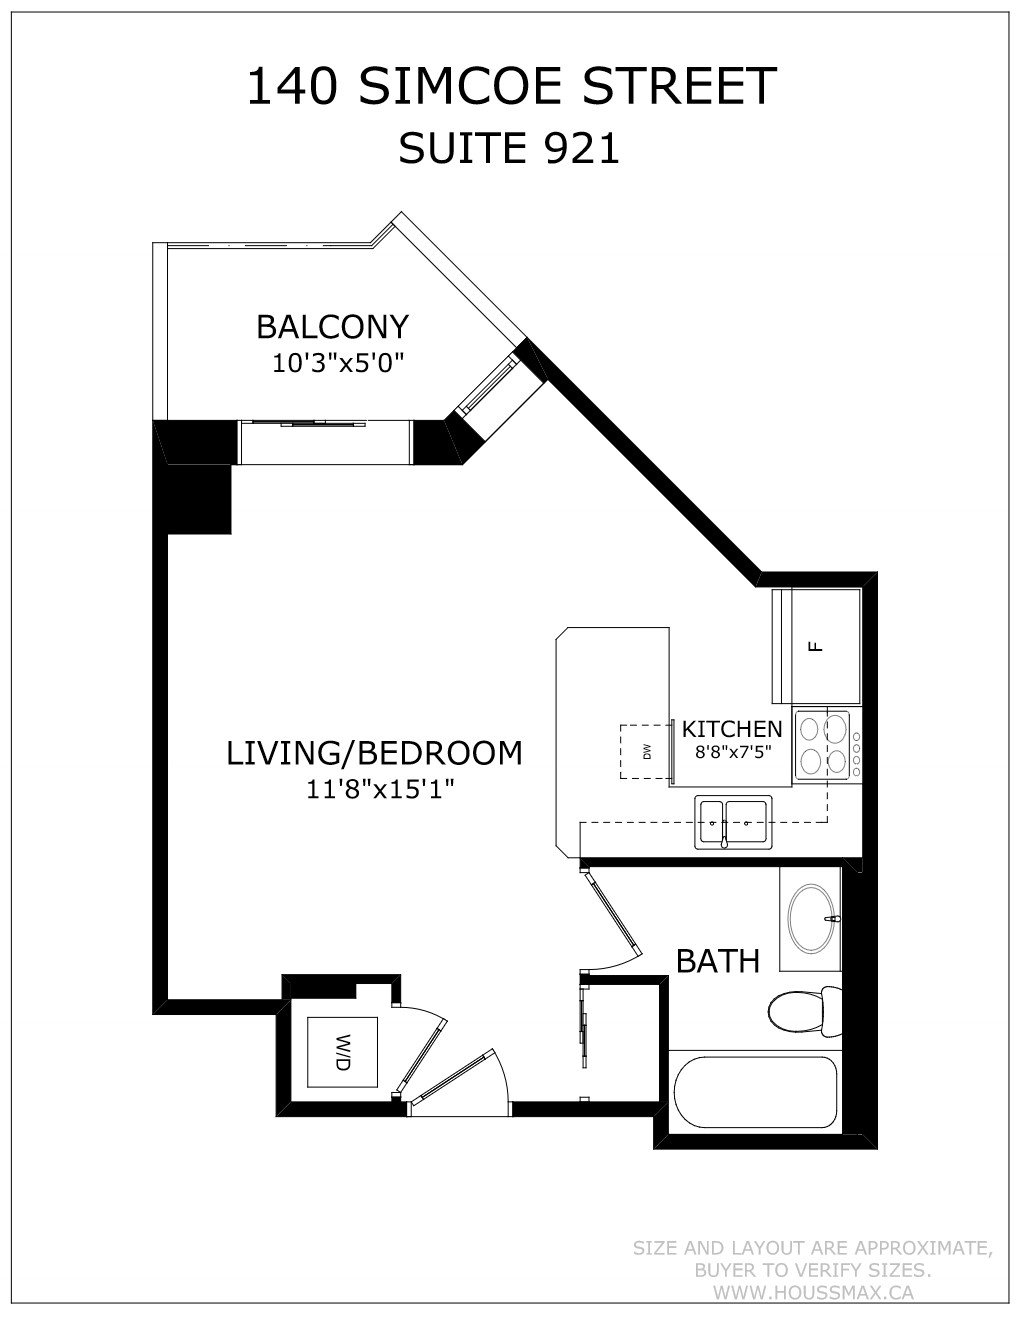 Floor plans and layout for 140 Simcoe St E Unit 921